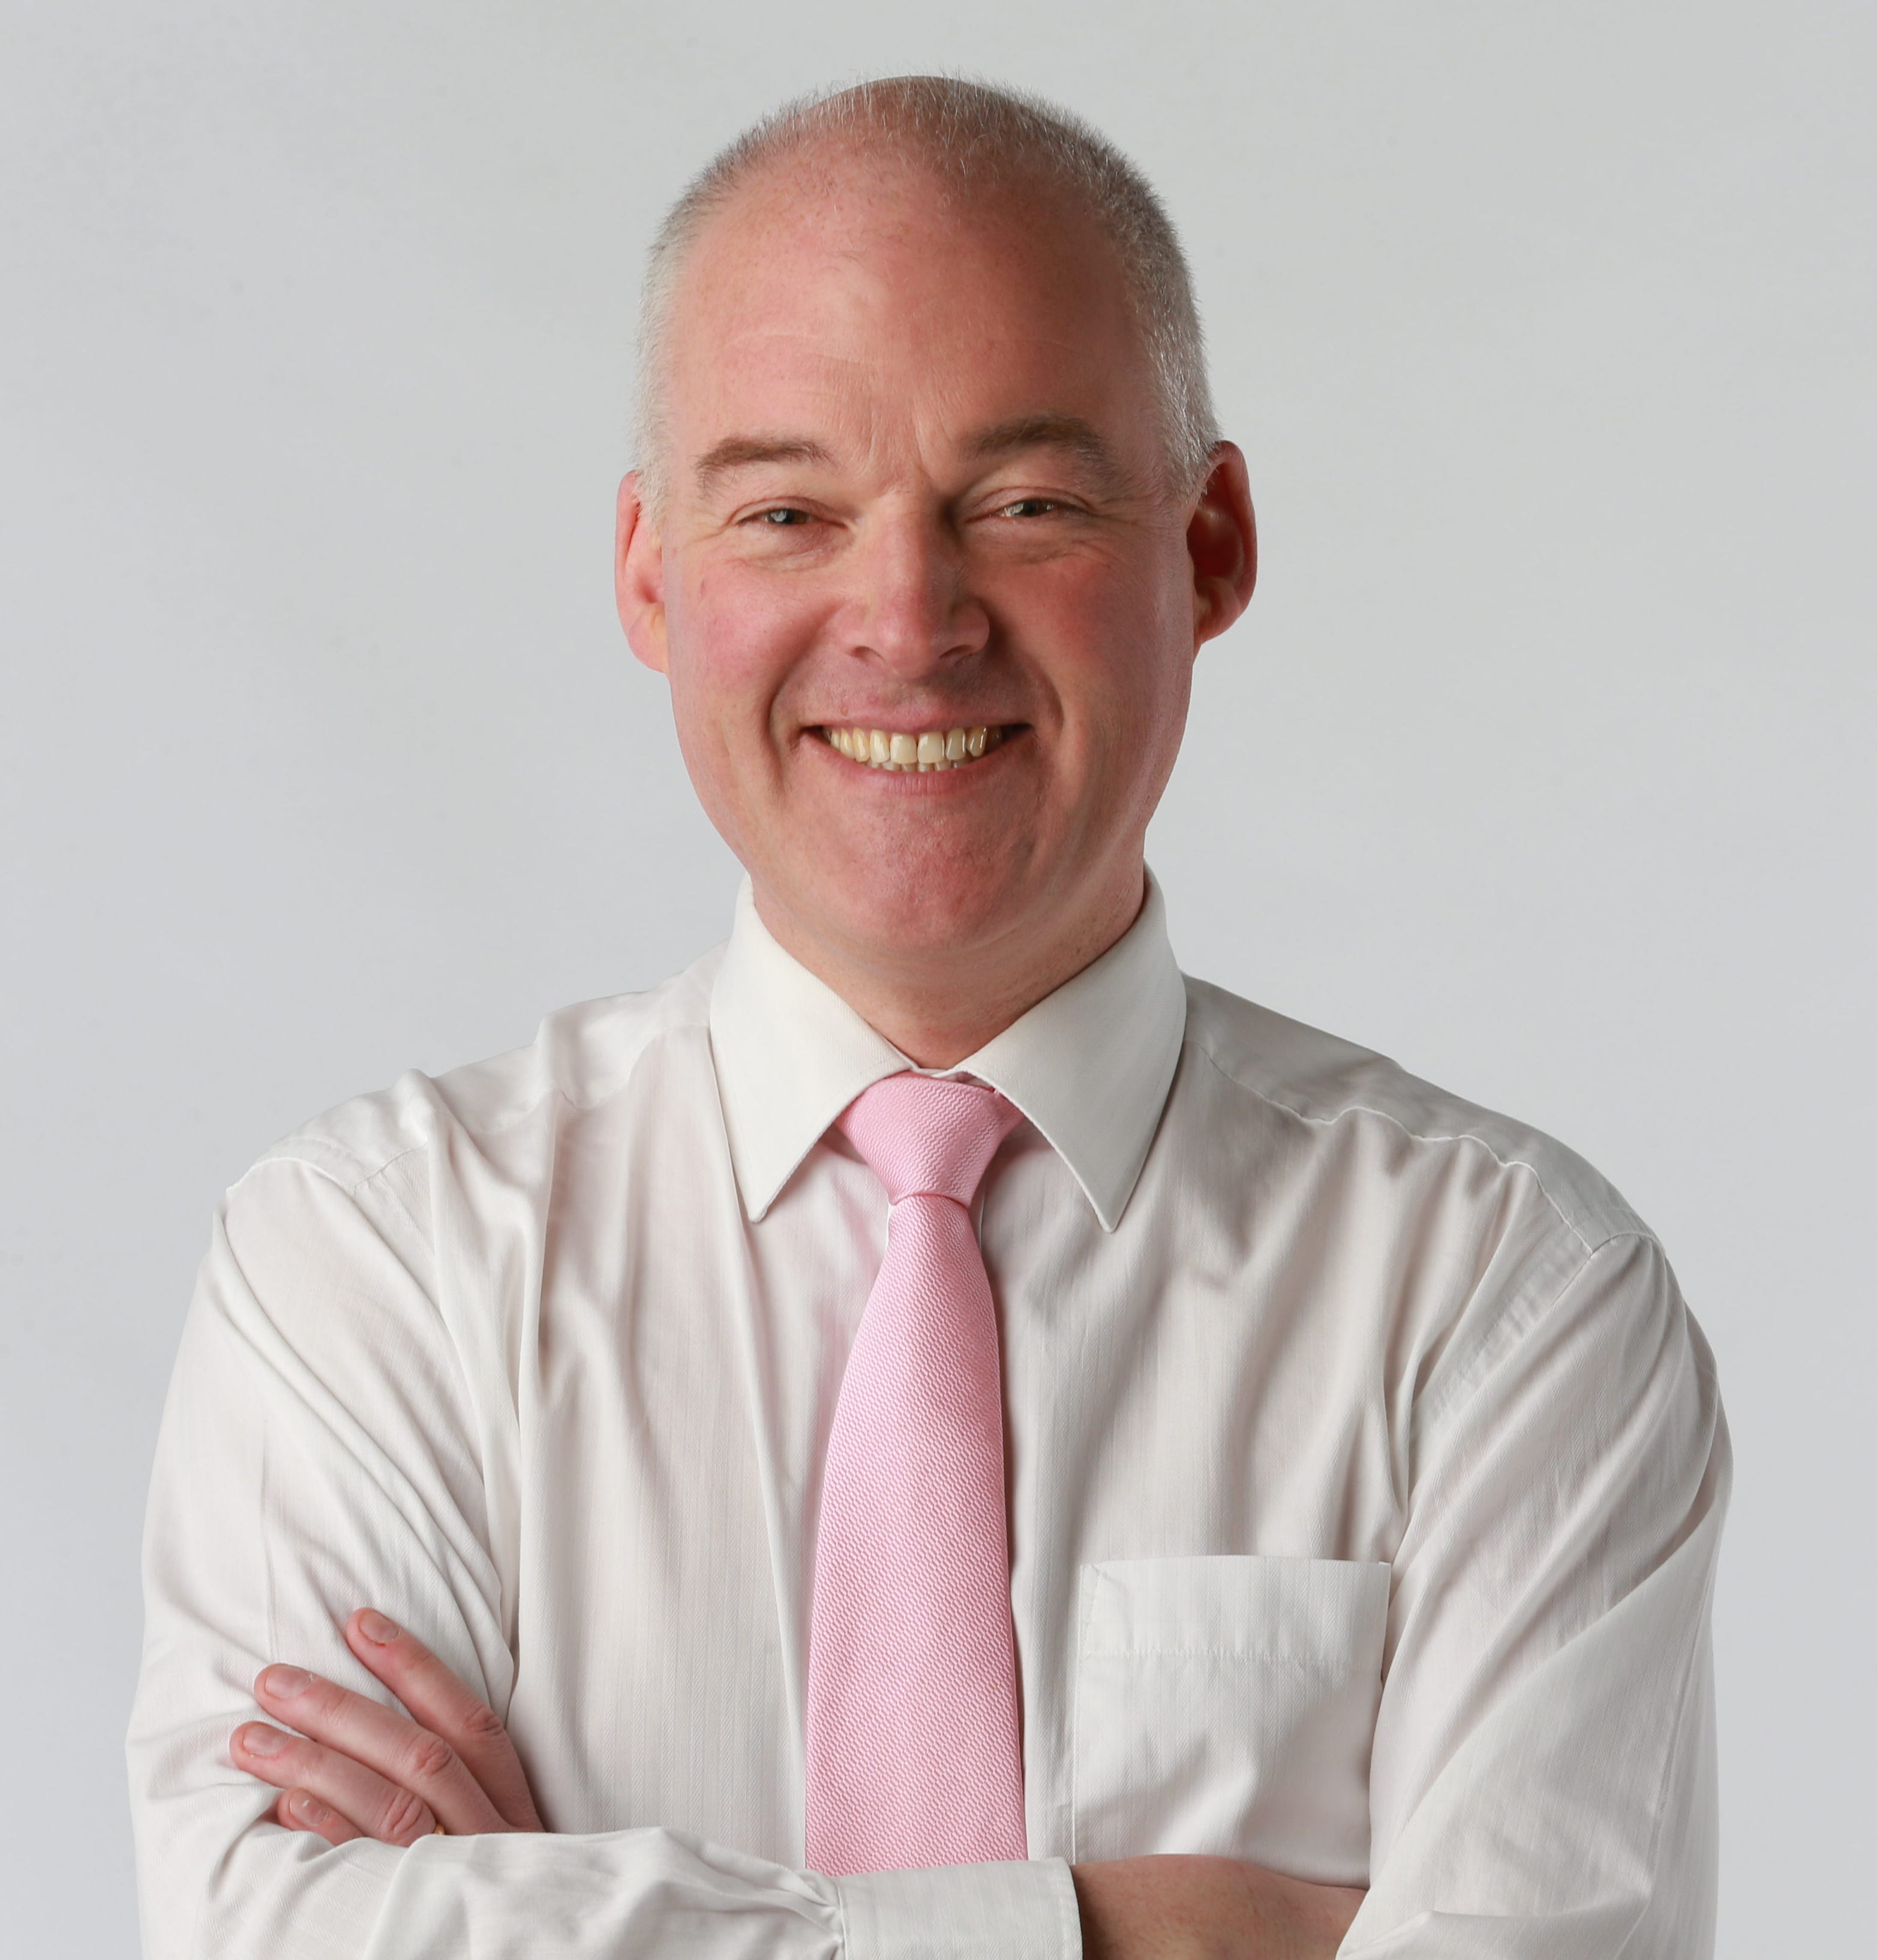 Jon Champion began his broadcasting career with BBC Radio in the 1980s.